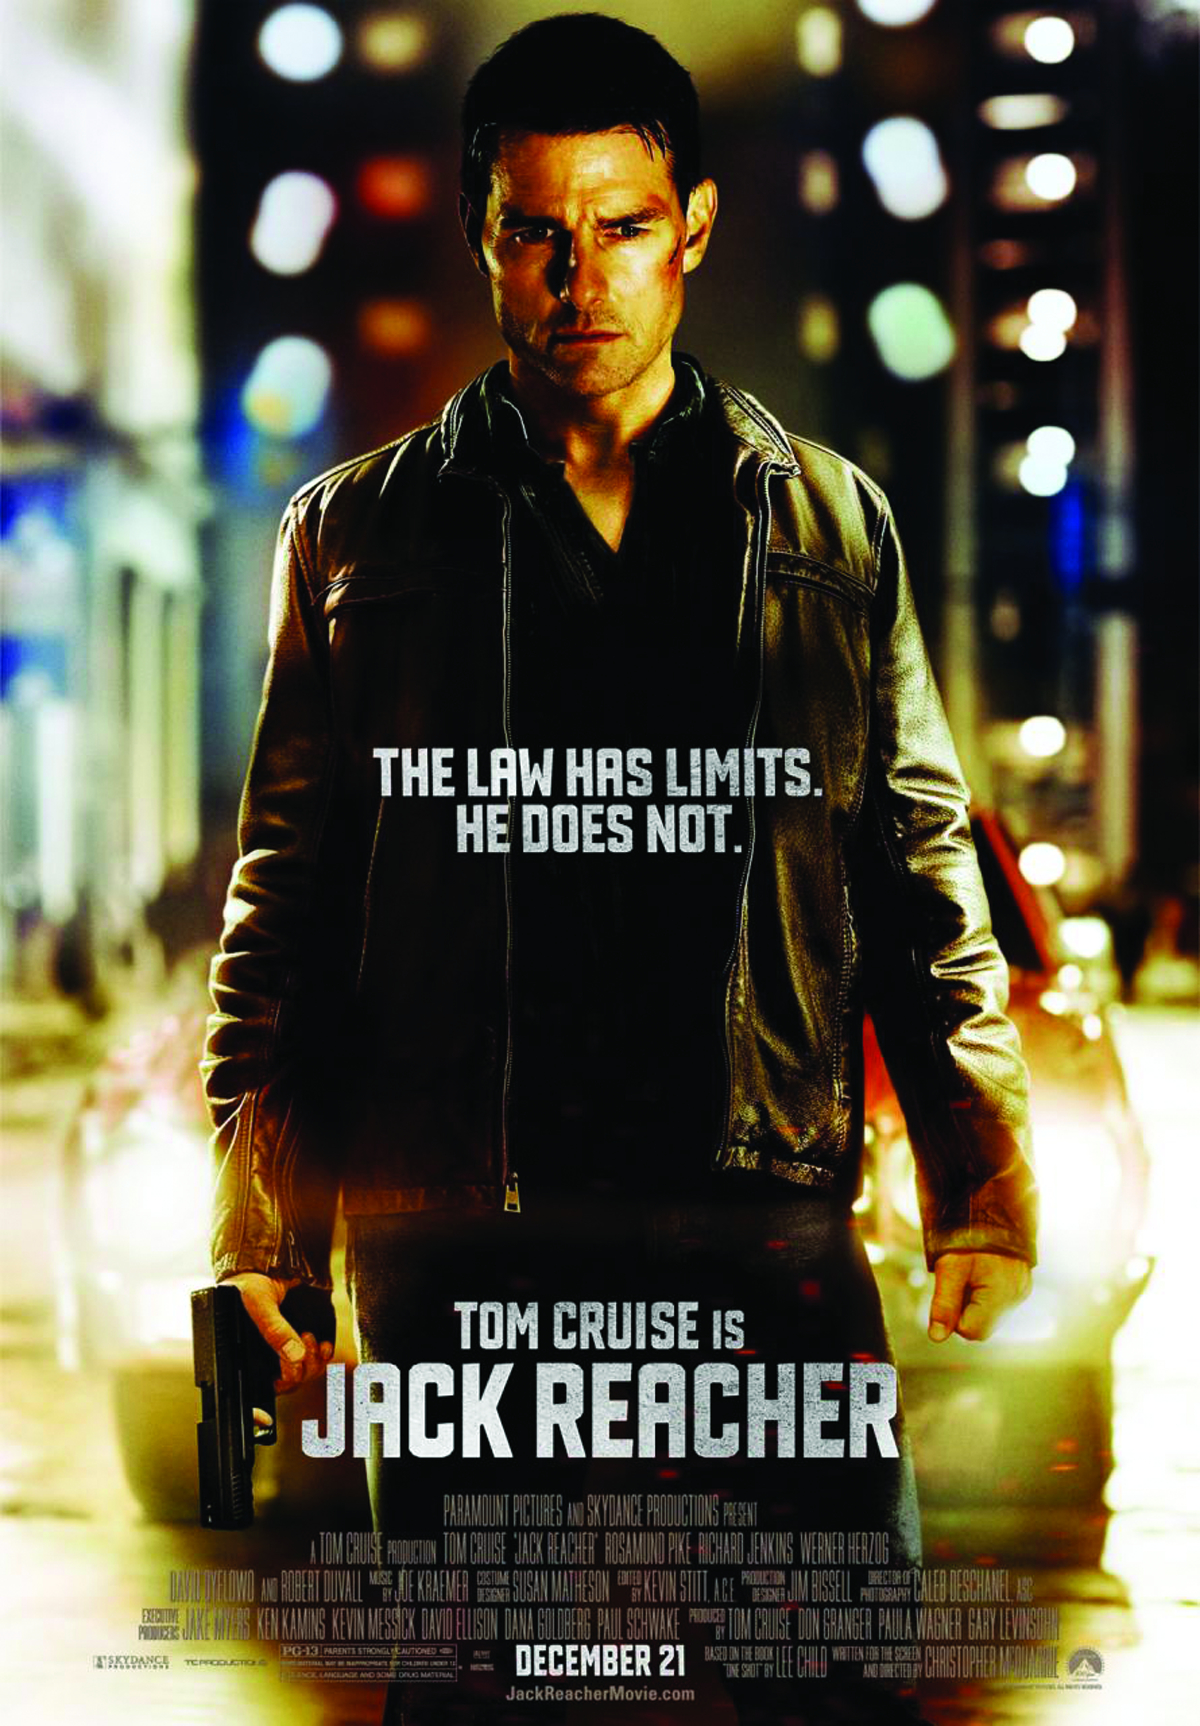 JACK REACHER BD + DVD